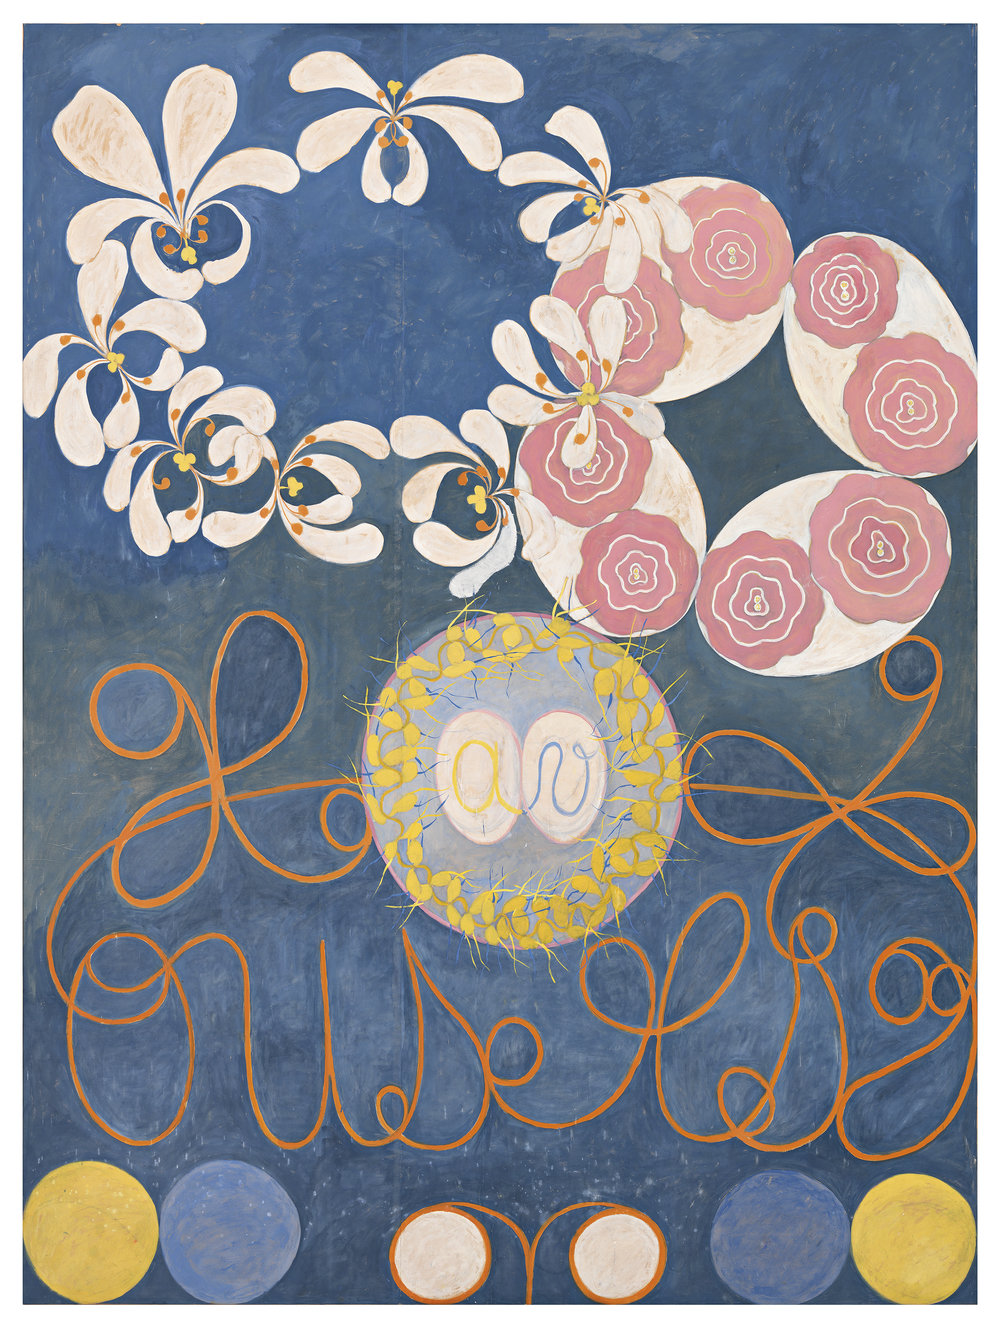 Hilma af Klint  Group IV, no 1. The Ten Largest 315 x 234 cm Edition of 10 + 2 AP 75% New Zeeland wool, 25% silk Hand-knotted